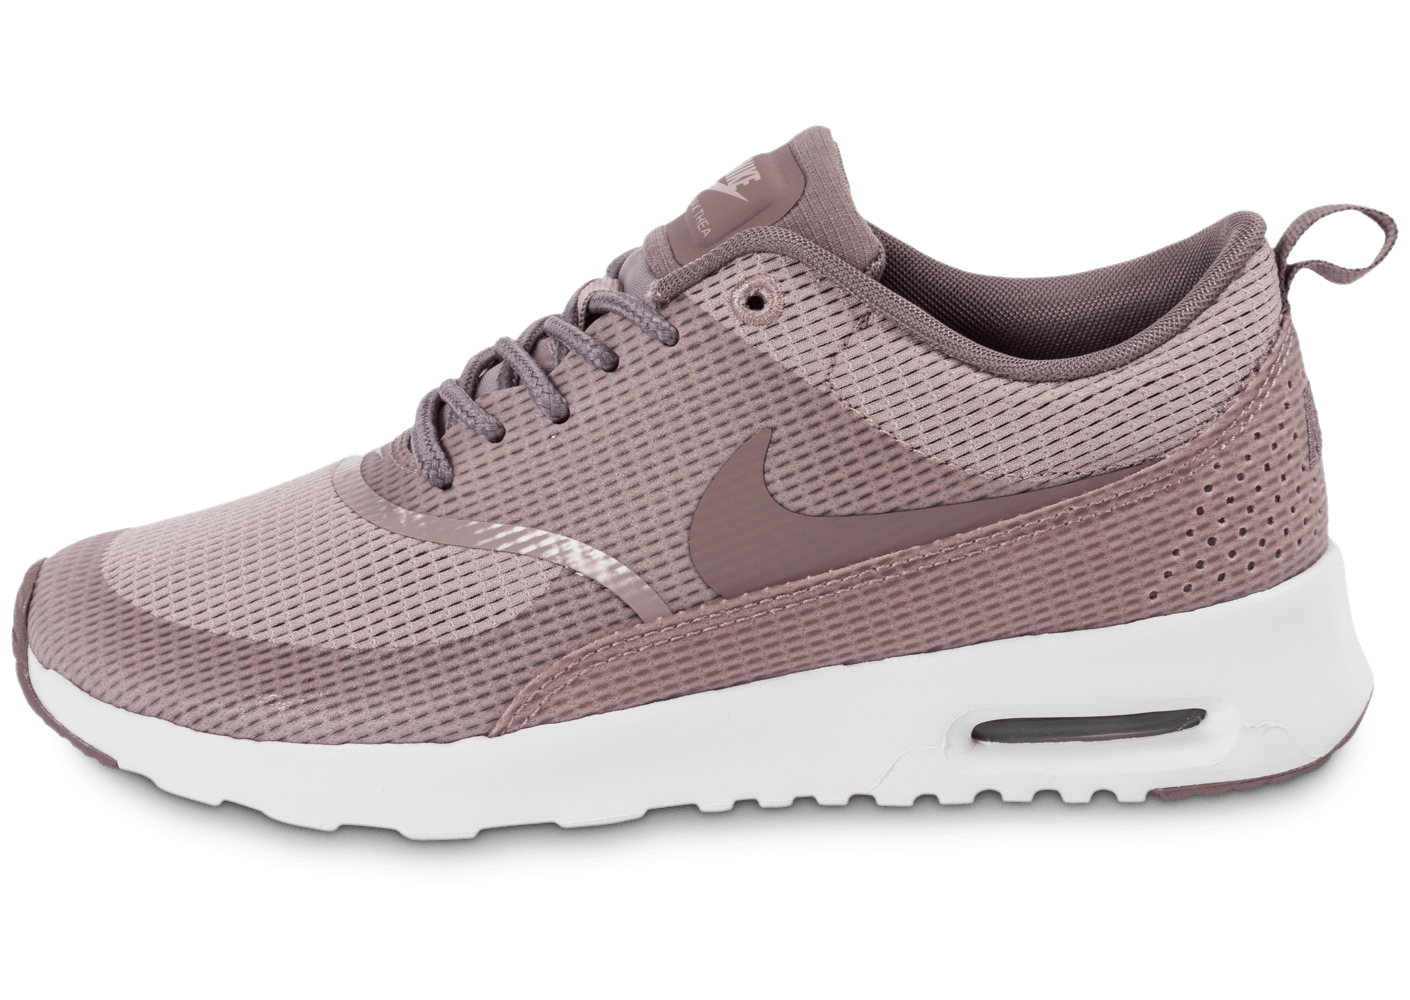 nike air max thea txt plum flog chaussures chaussures. Black Bedroom Furniture Sets. Home Design Ideas